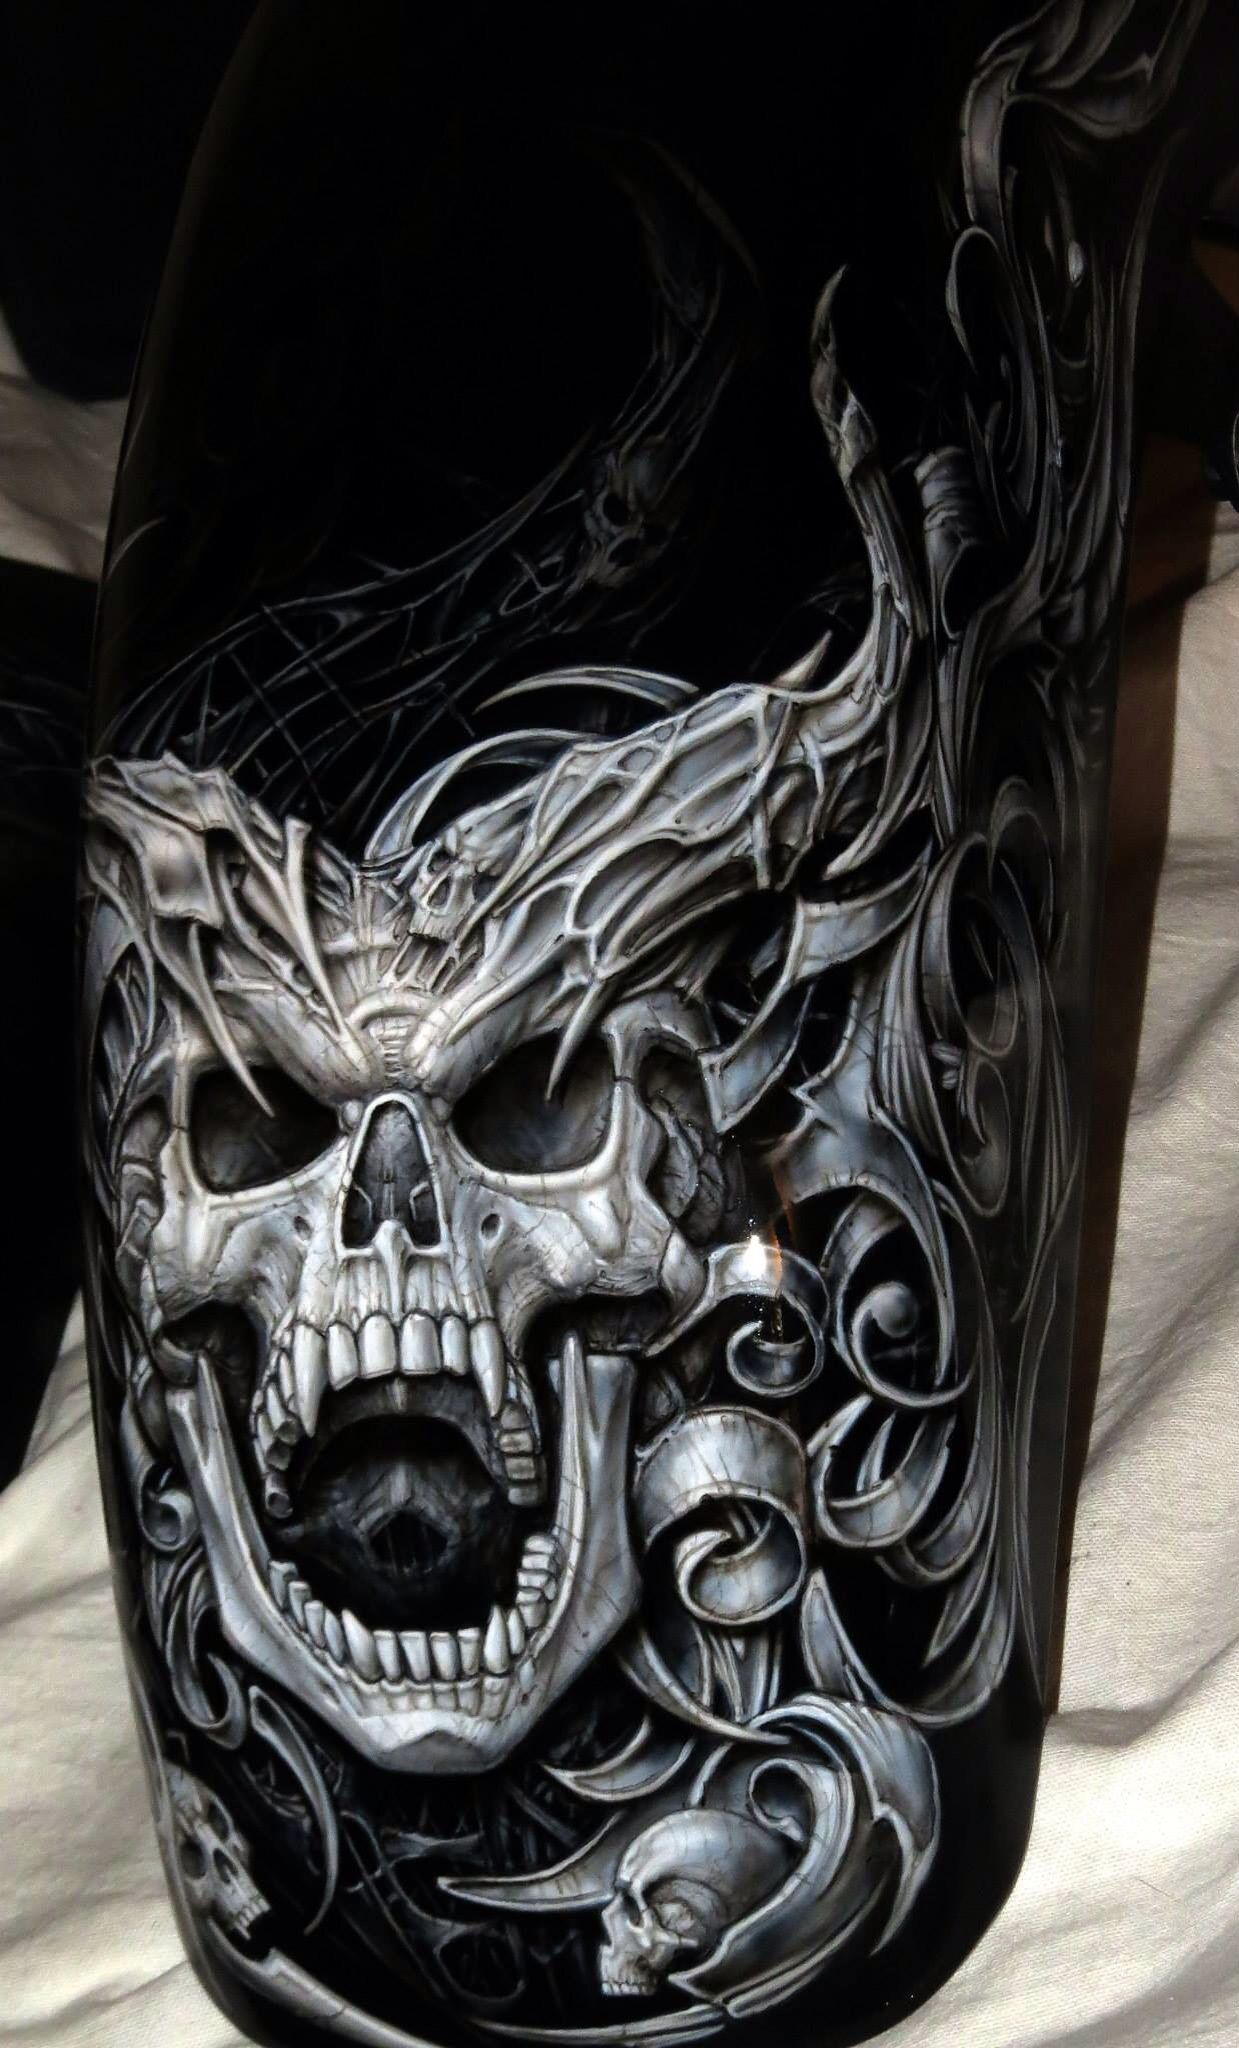 Check out this amazing airbrush master wwwairbrushfitto